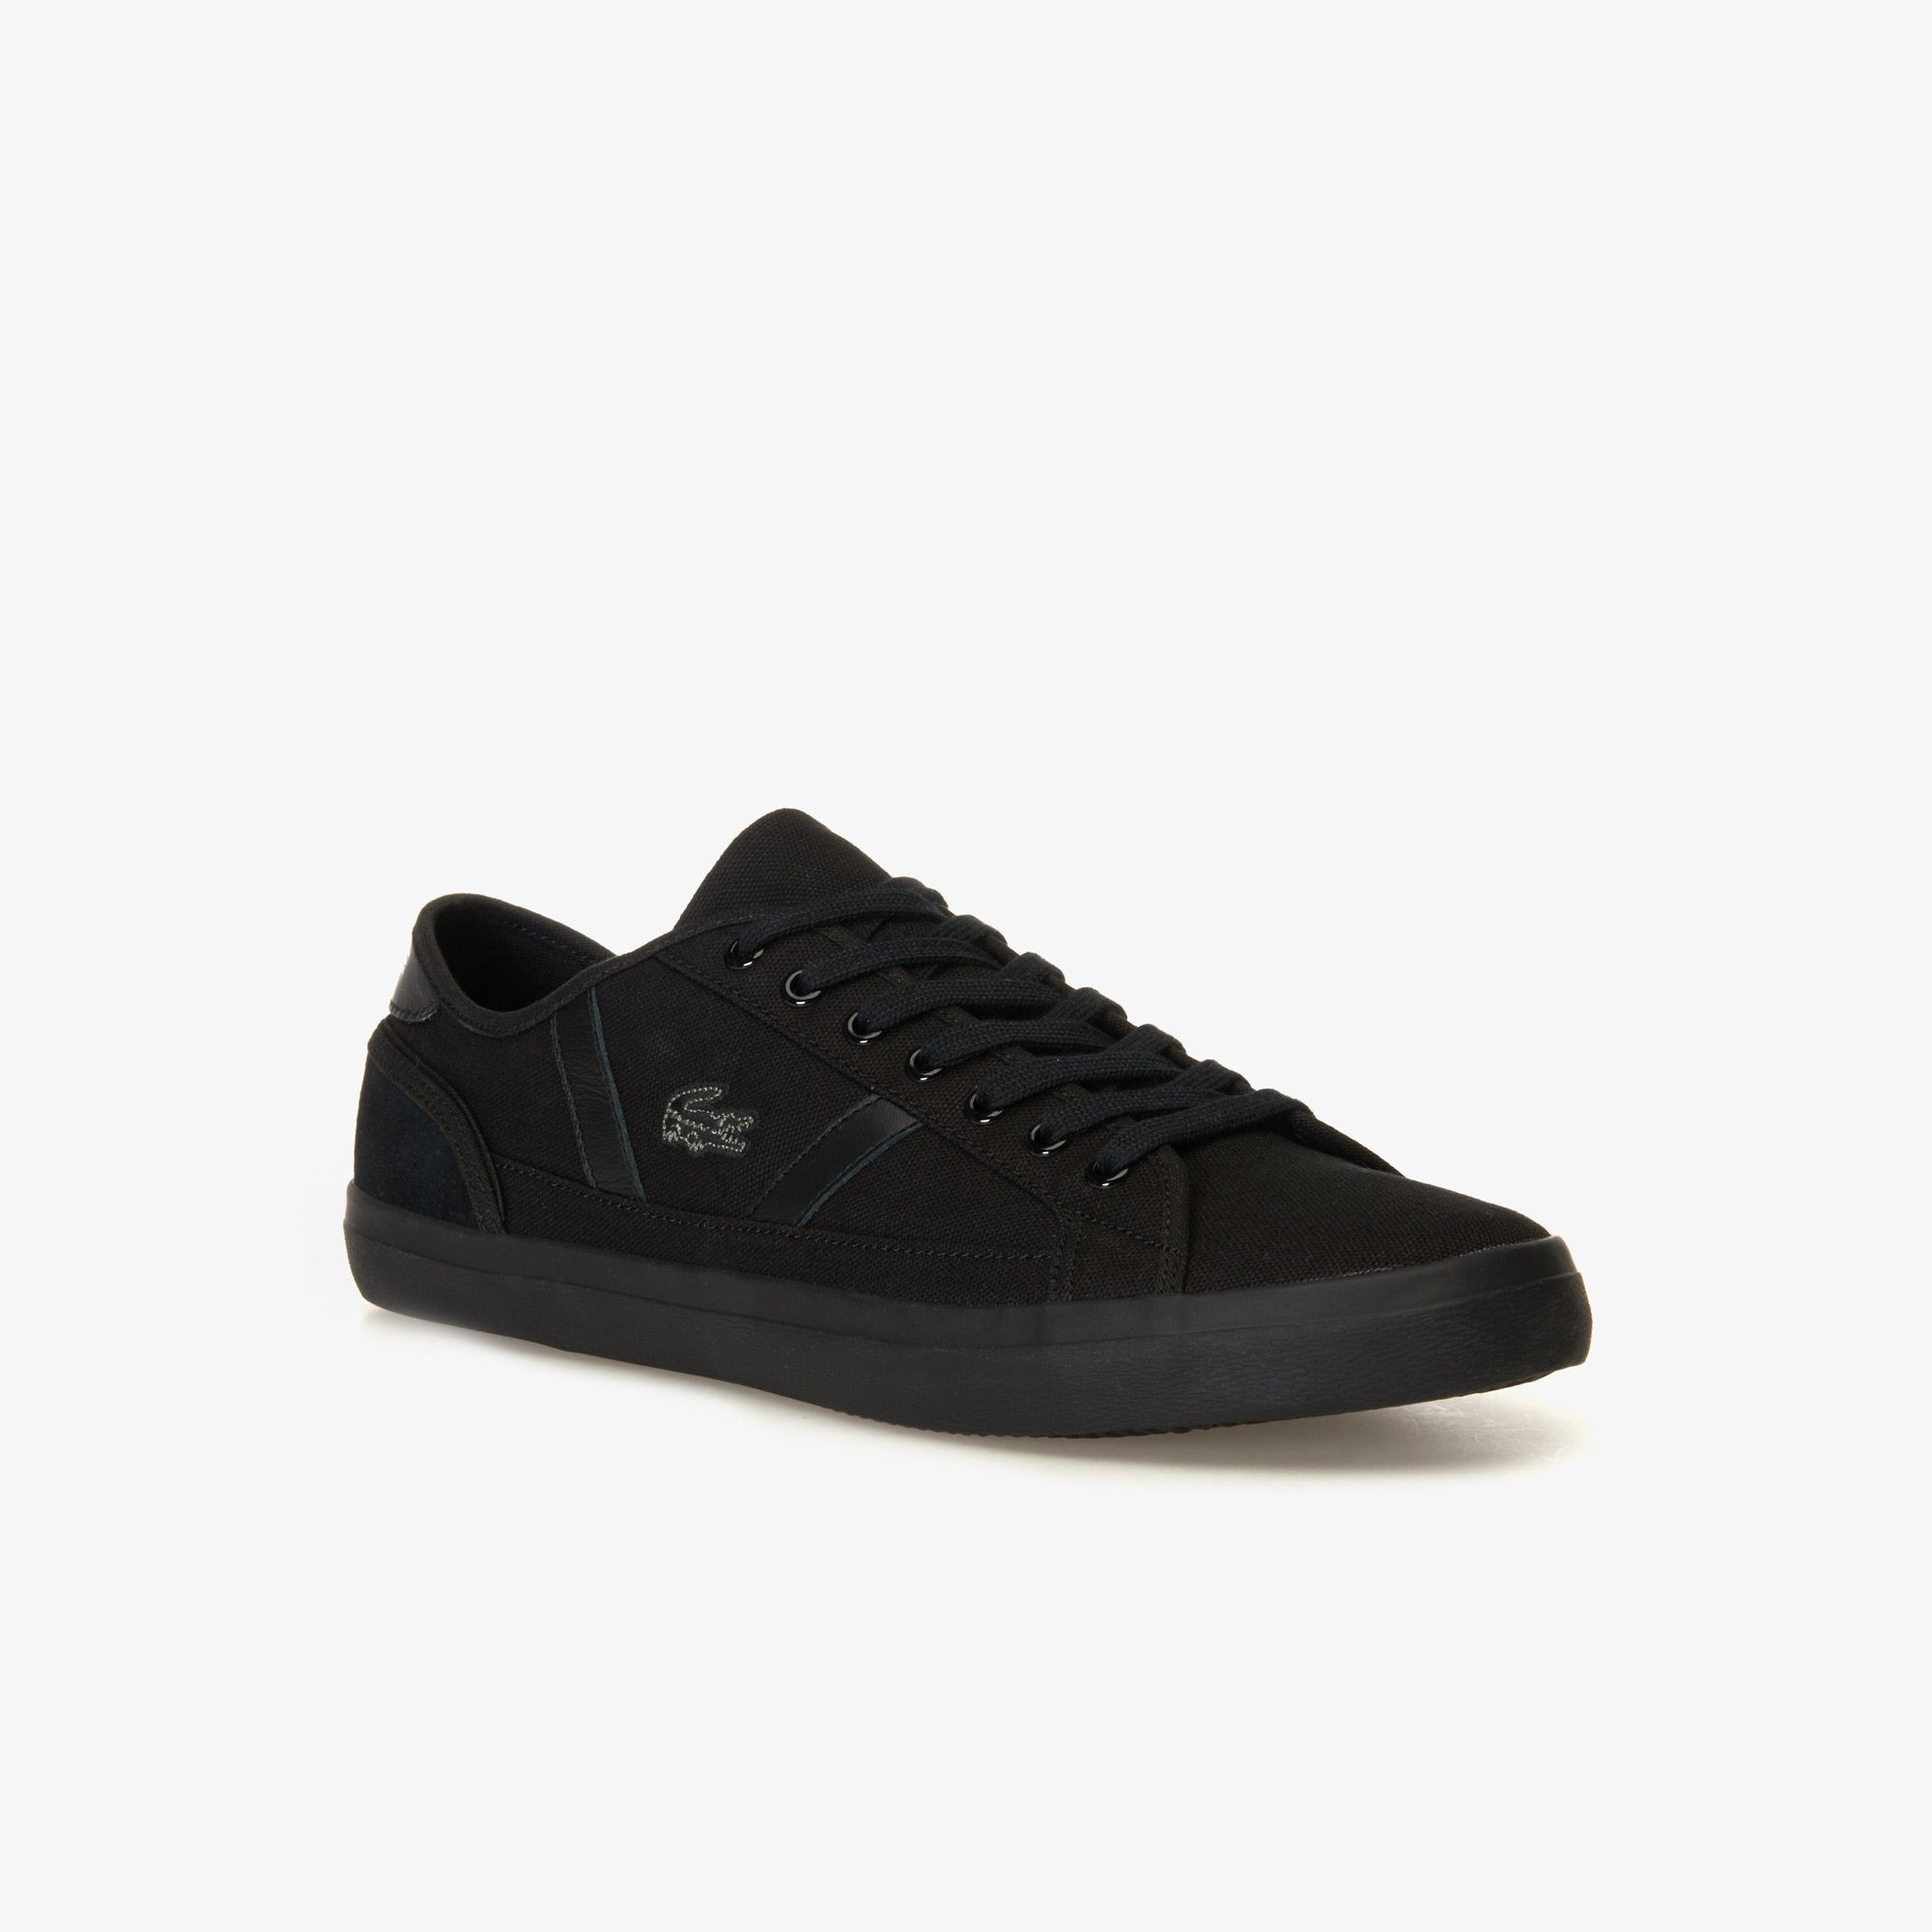 2f7aea2c5 Men s Sideline Canvas and Leather Sneakers